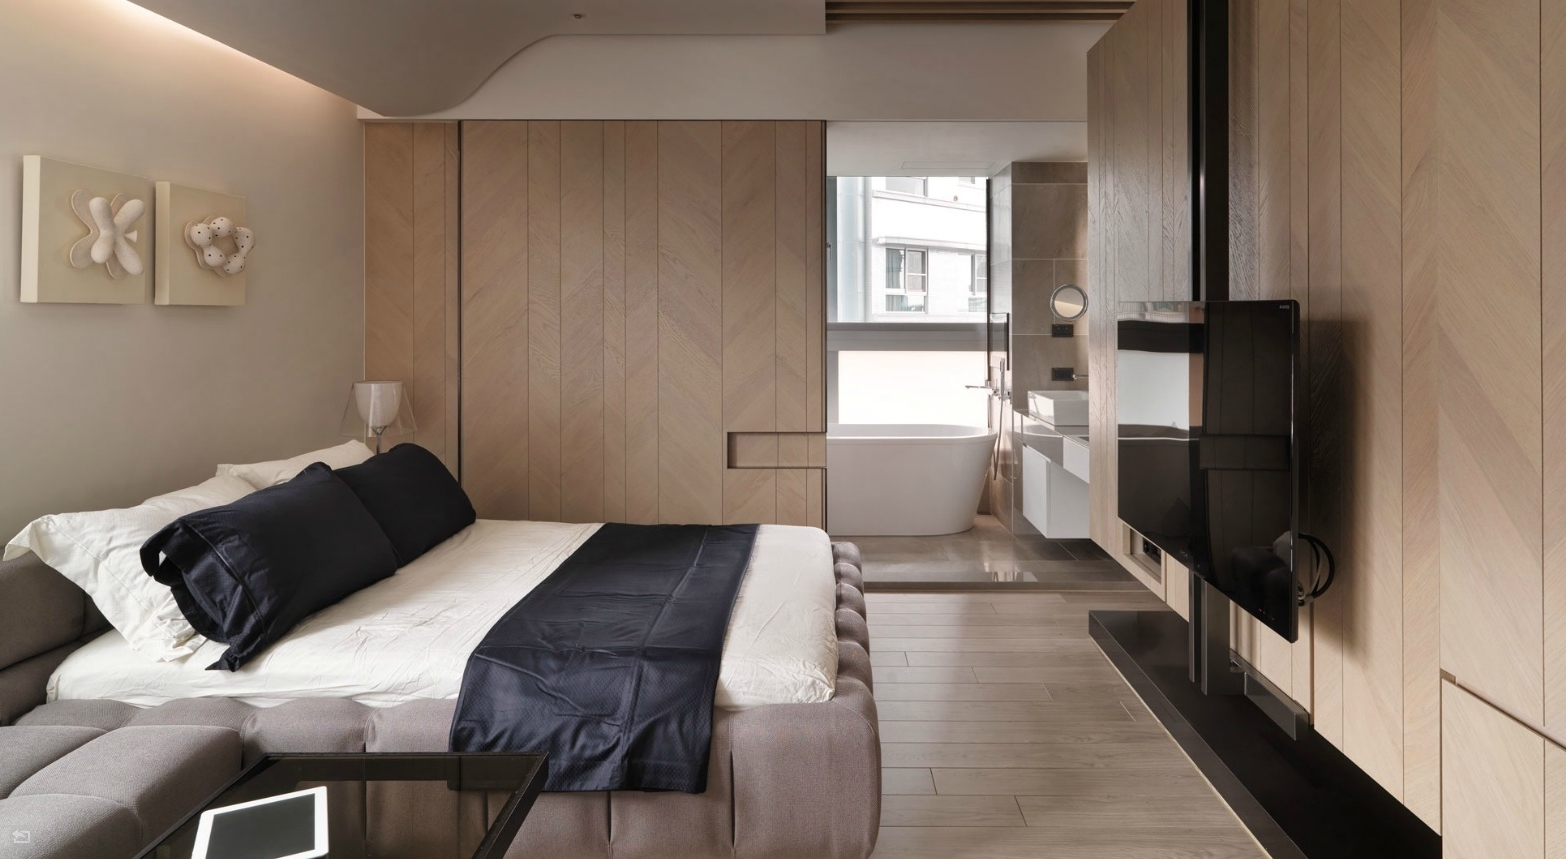 Luxurious Bedroom Apartment With Bathroom Combo 7850